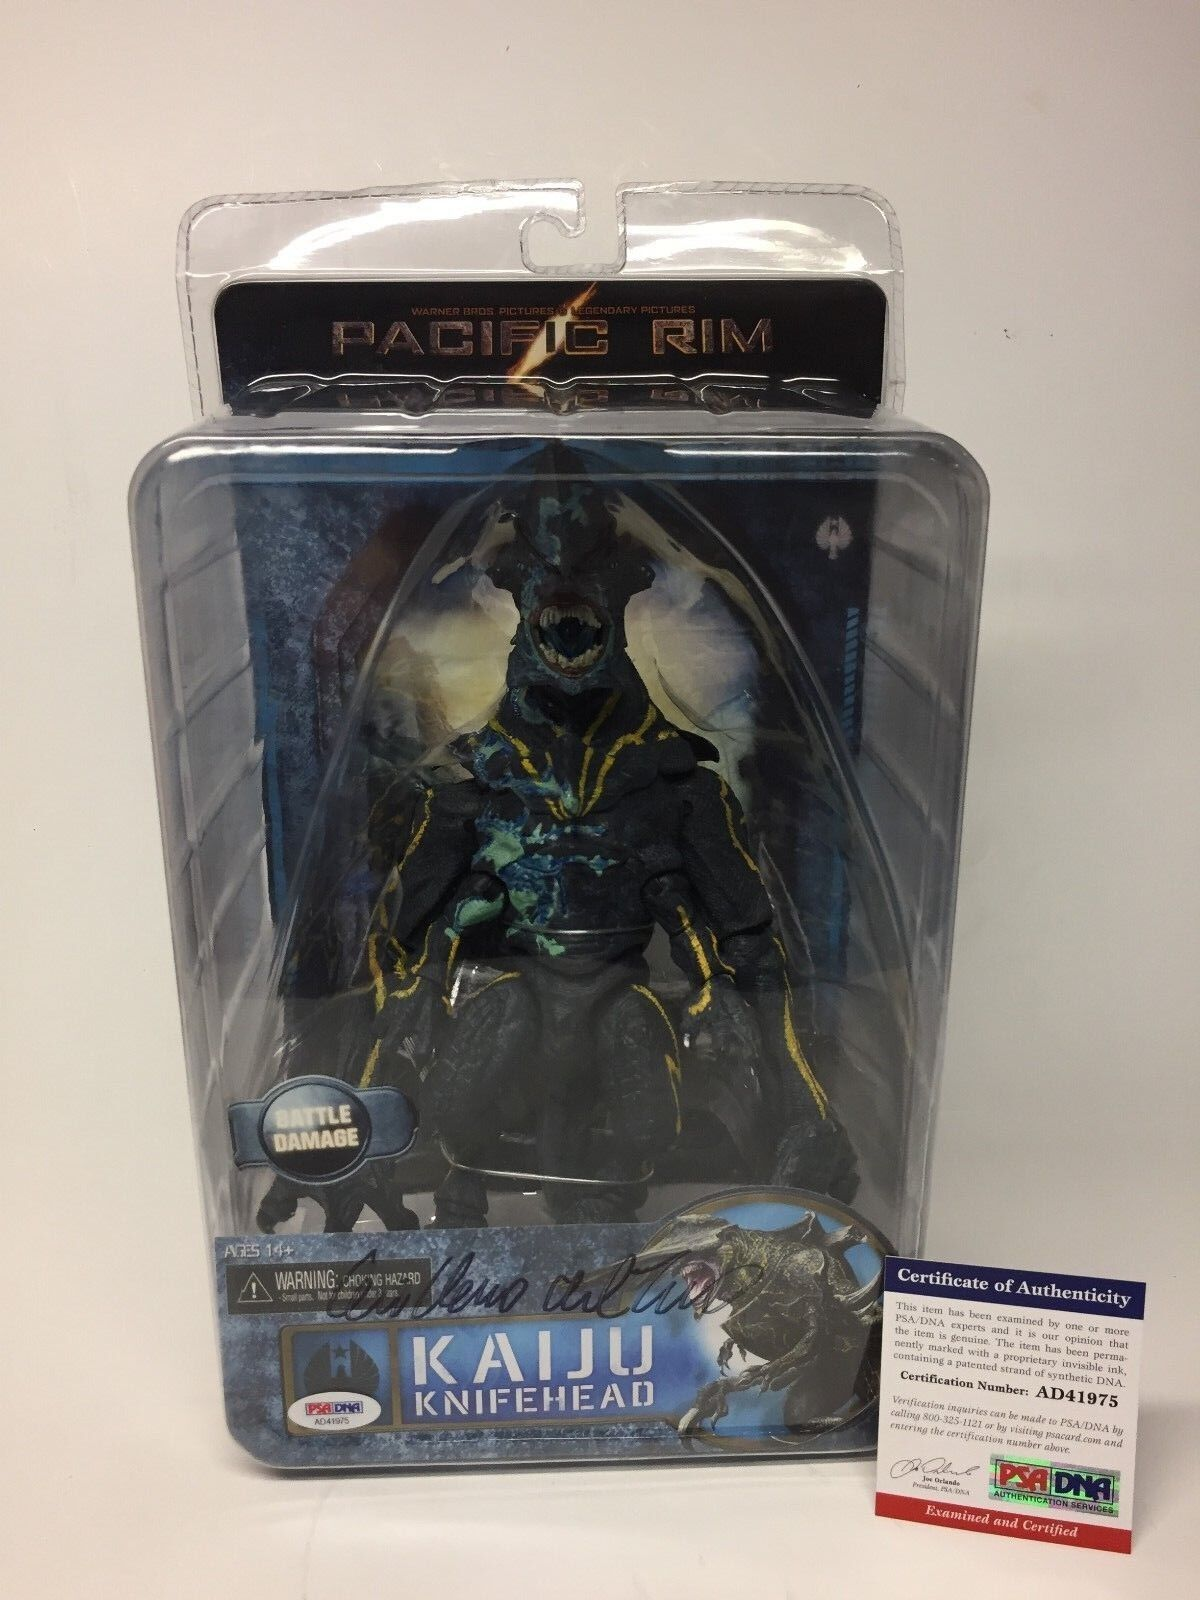 Guillermo Del Toro Signed Kaiju Knifehead Pacific Rim Monster Action Figure PSA